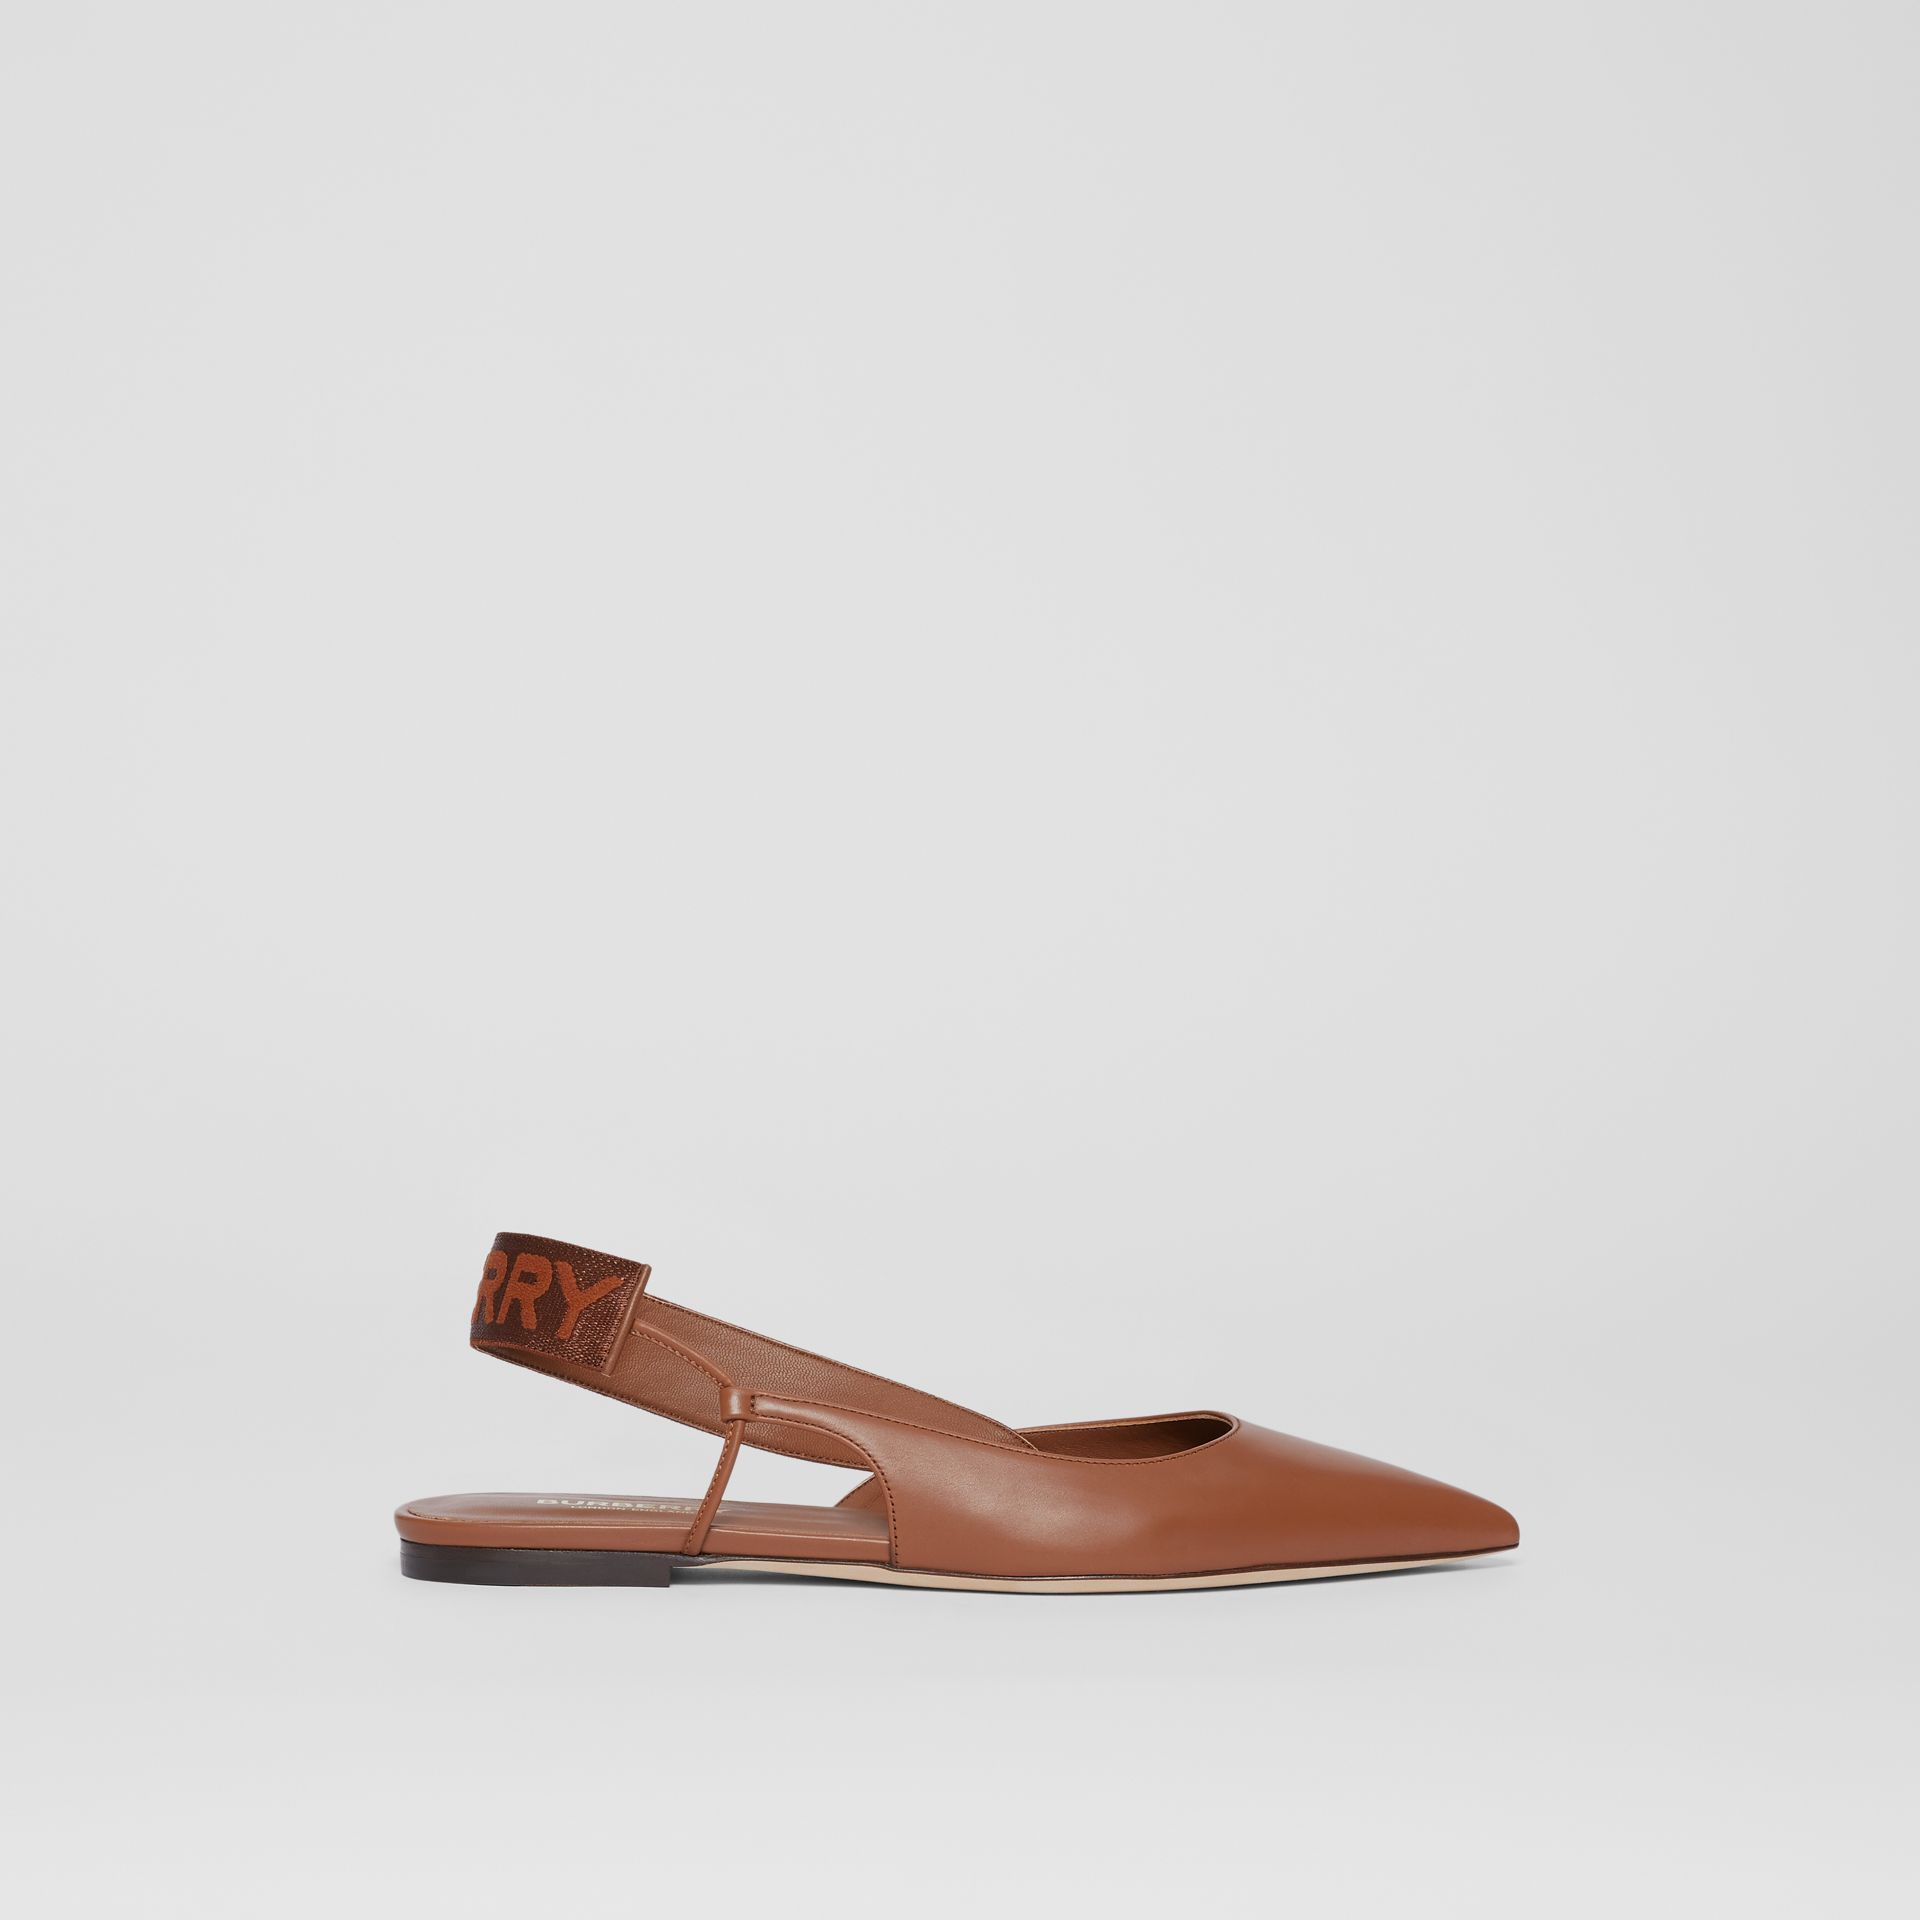 Logo Detail Leather Slingback Flats in Tan - Women | Burberry - gallery image 4